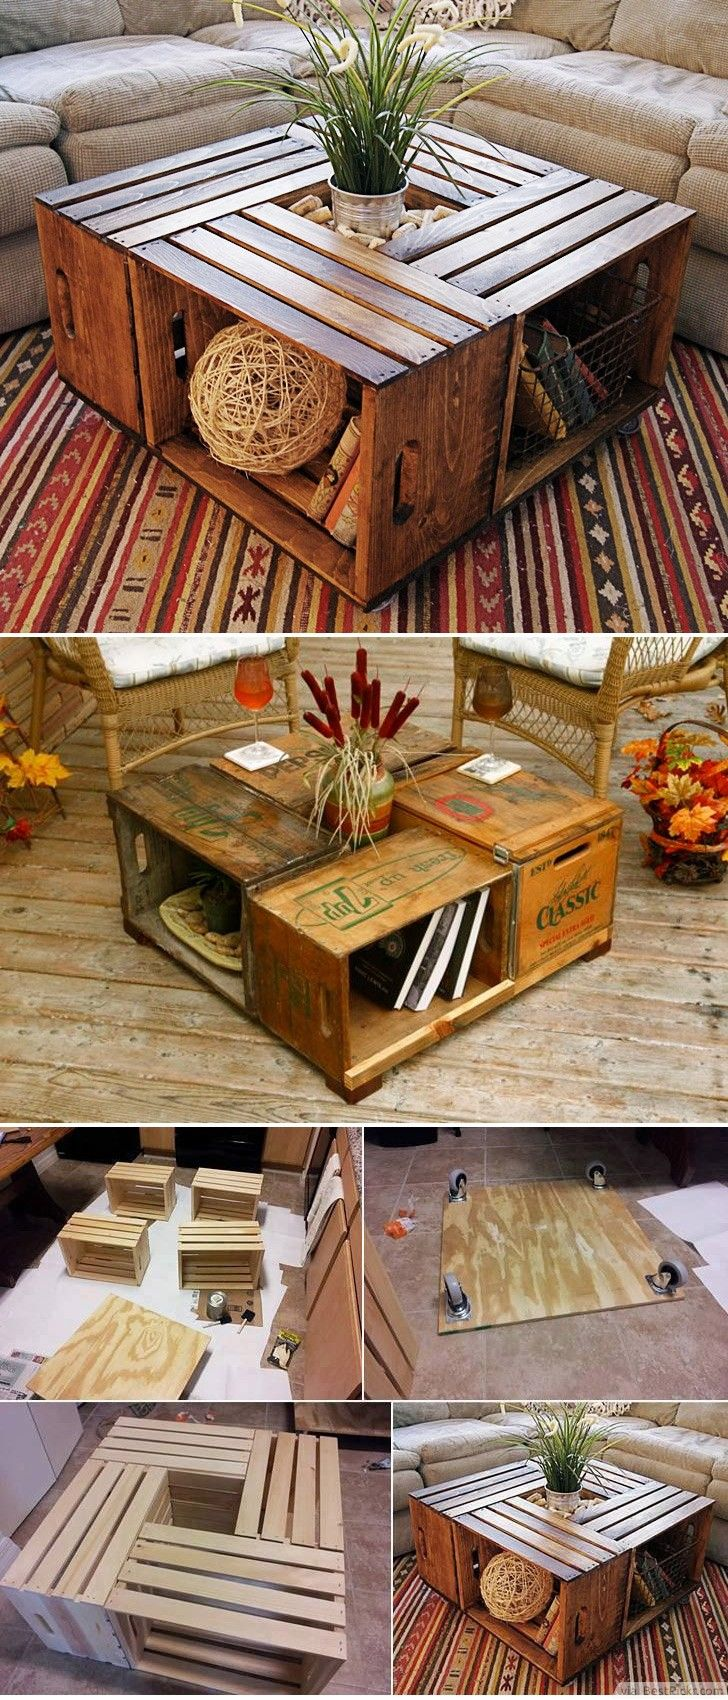 Antique Wine Crate Or Wood Box Coffee Table DIY http